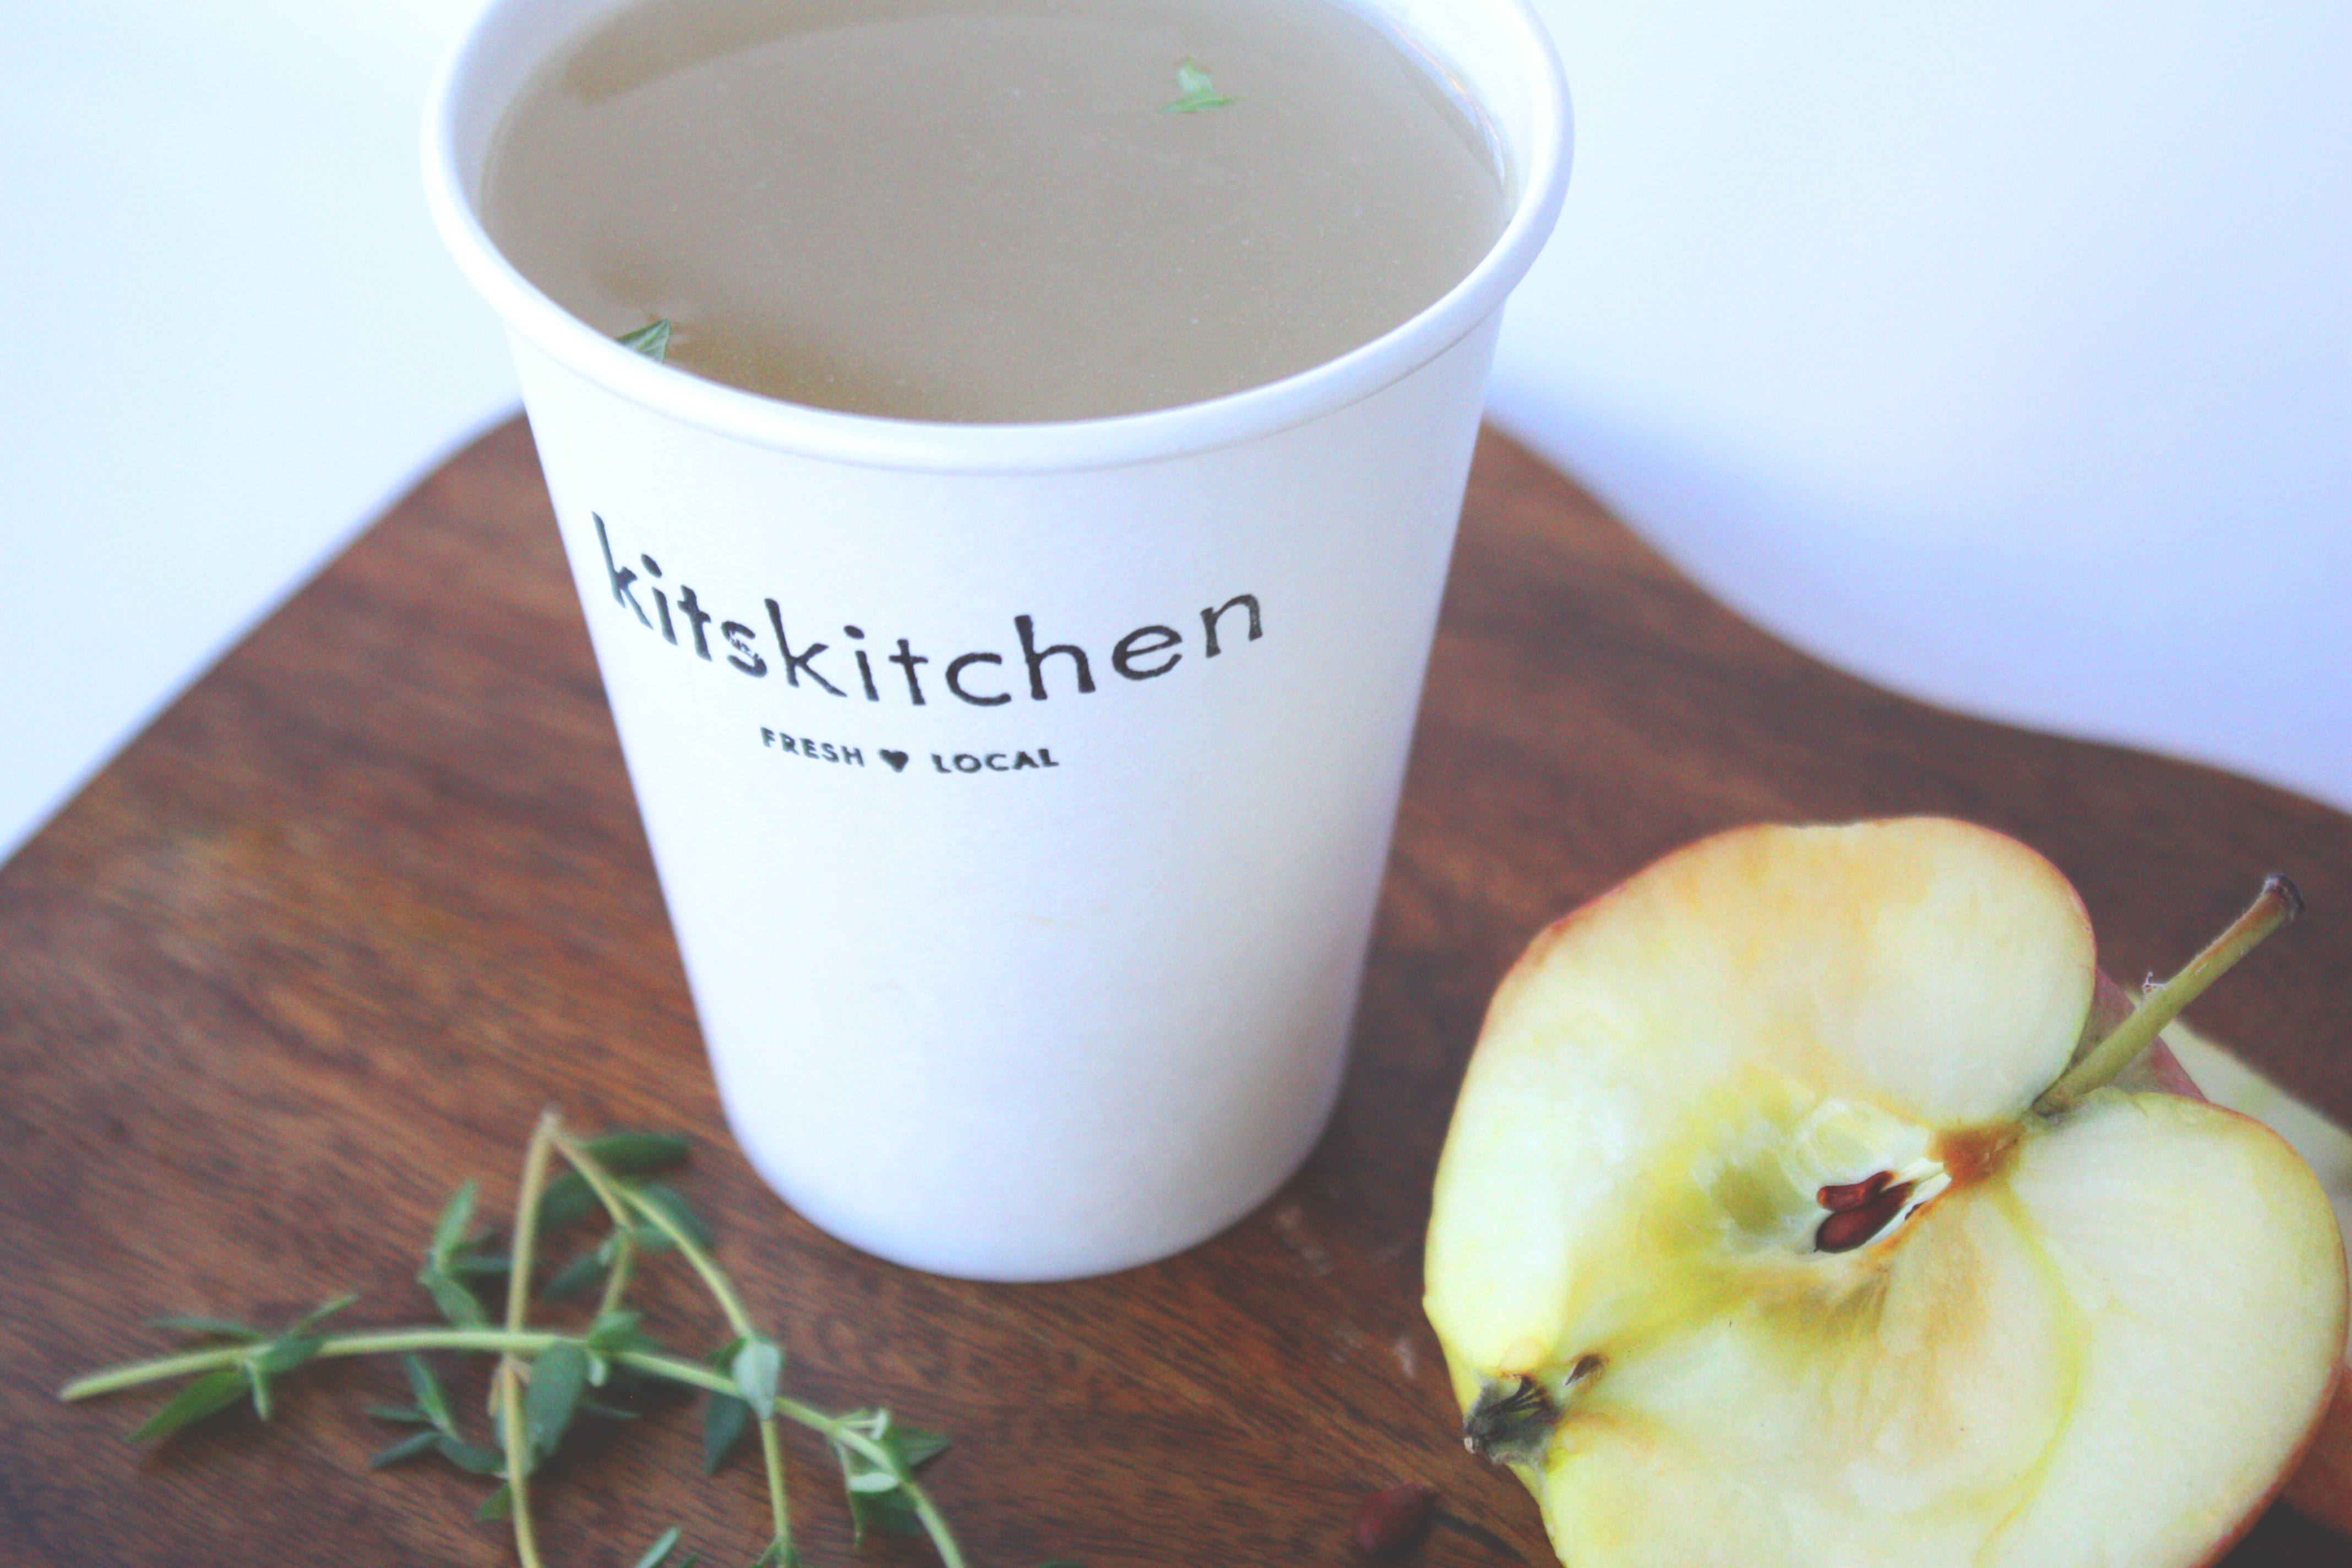 kitskitchen infused chicken broth